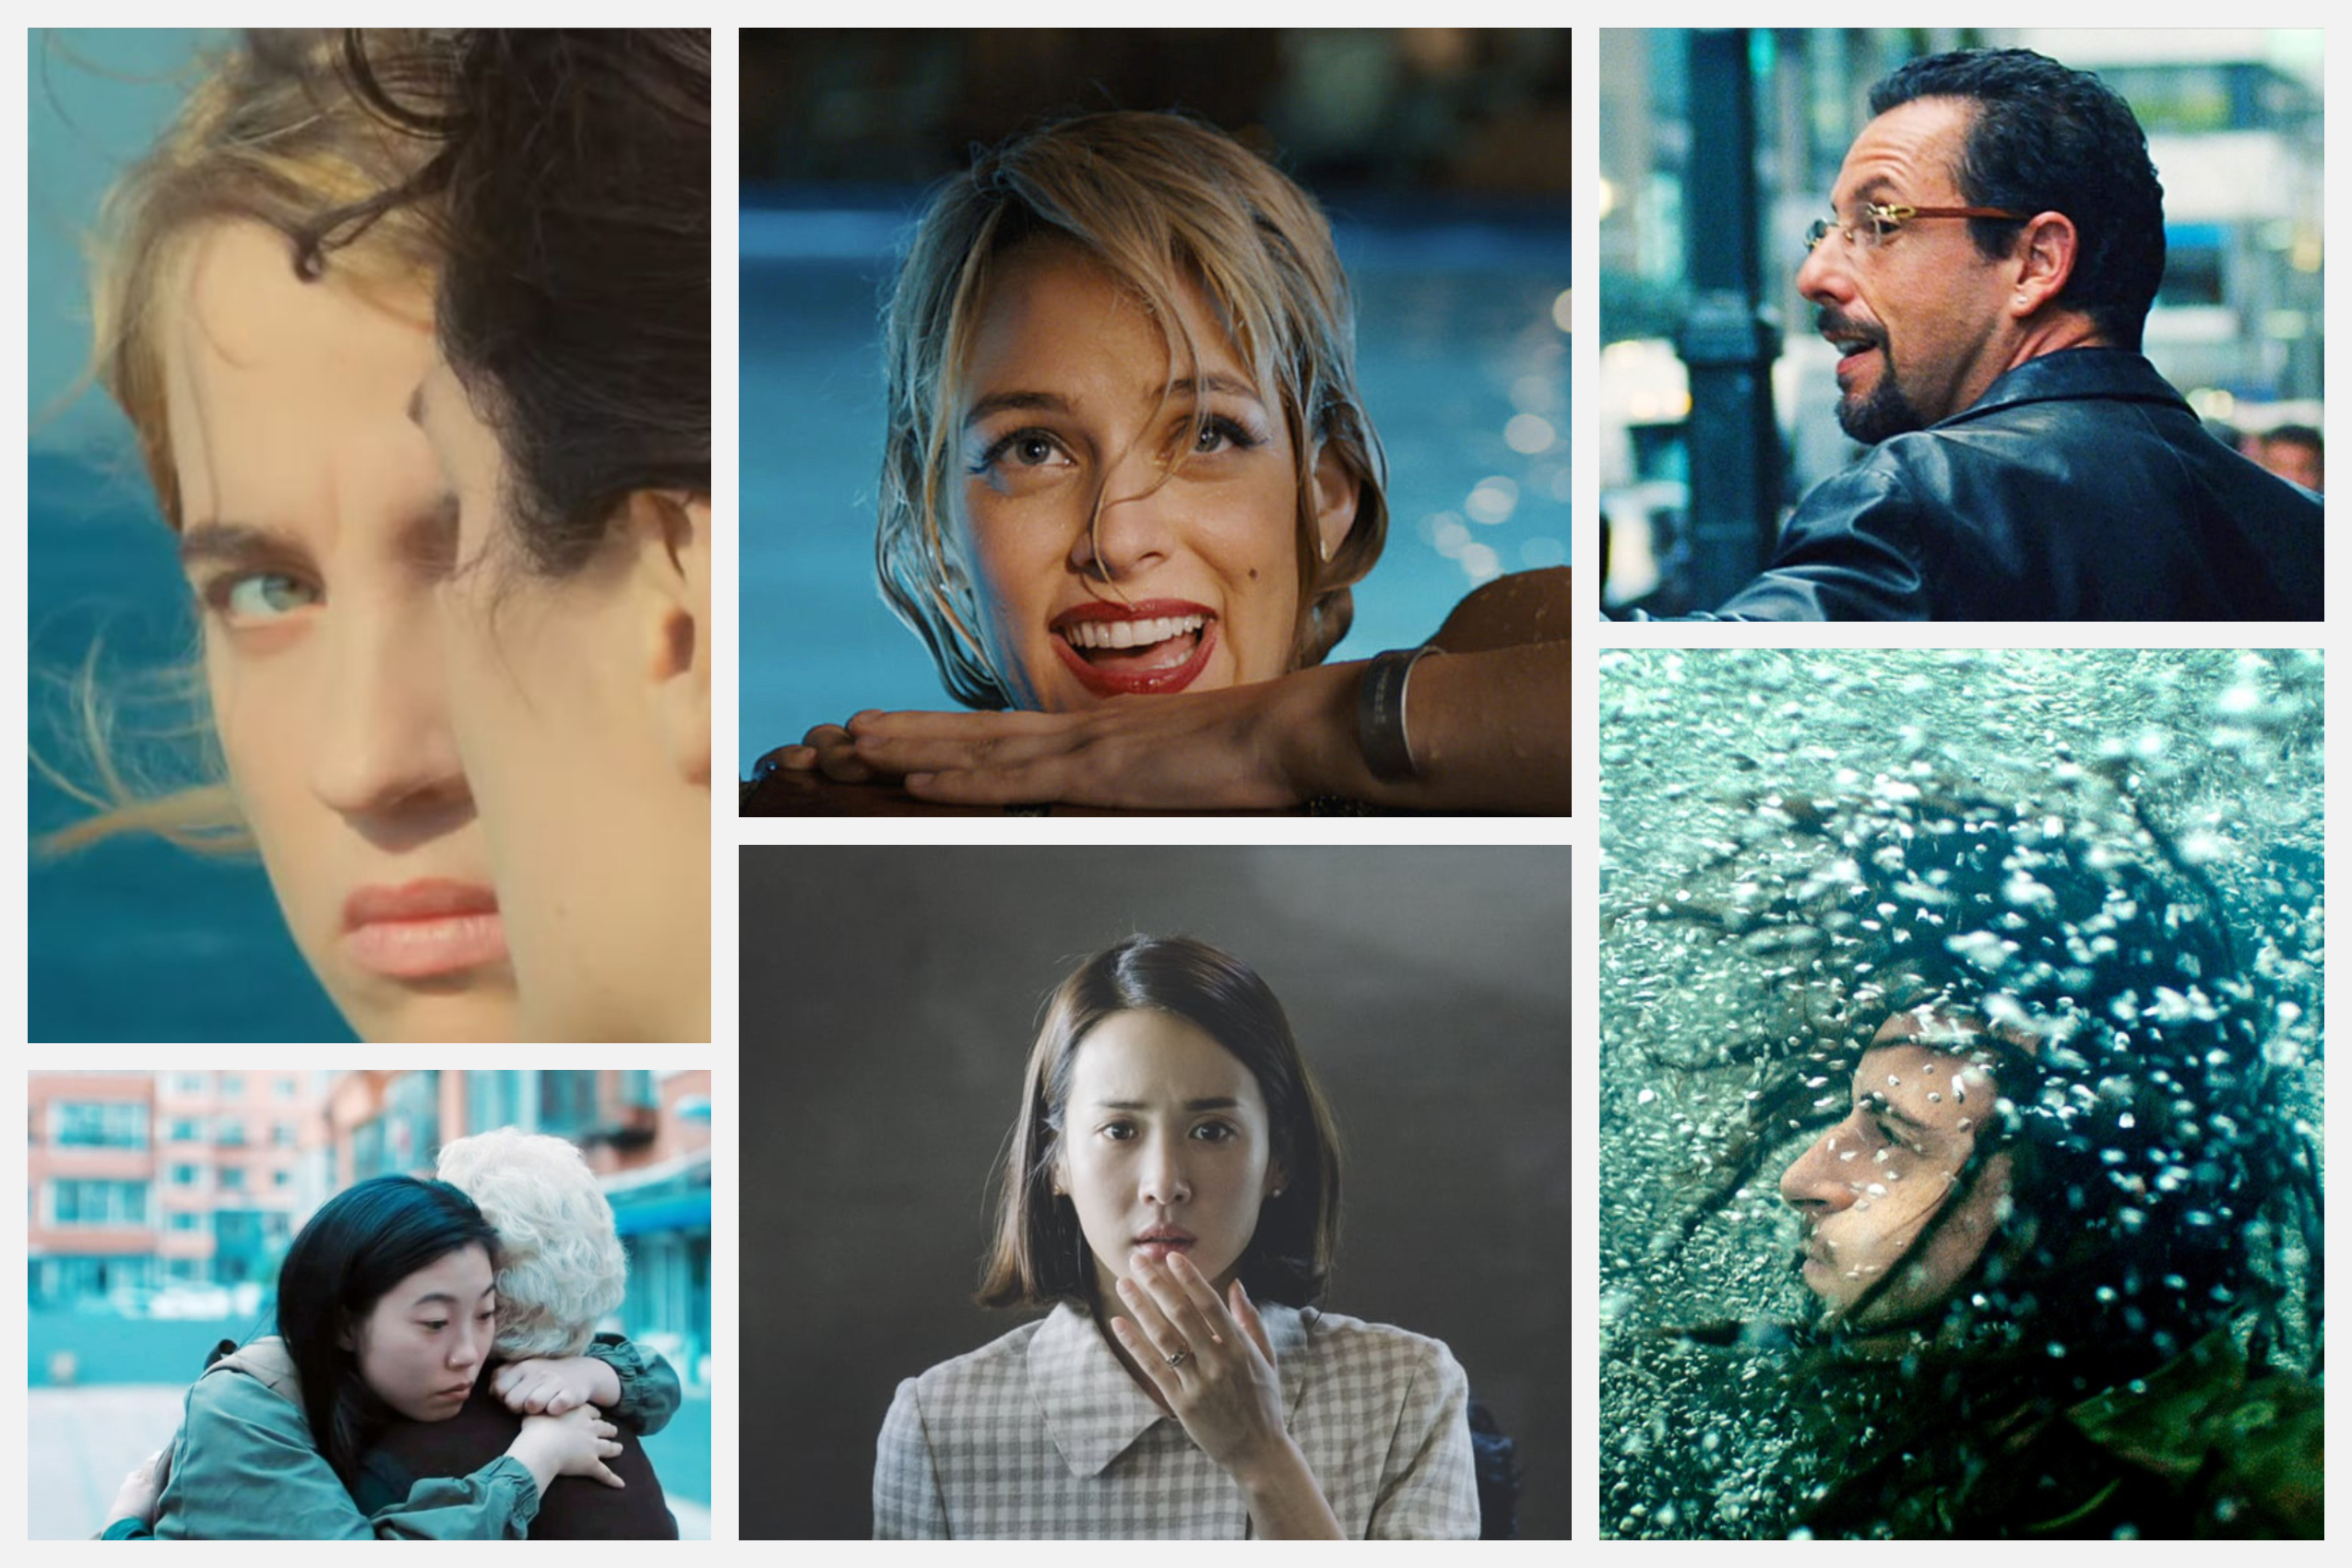 35 Directors Pick Their Favorite Movies of 2019